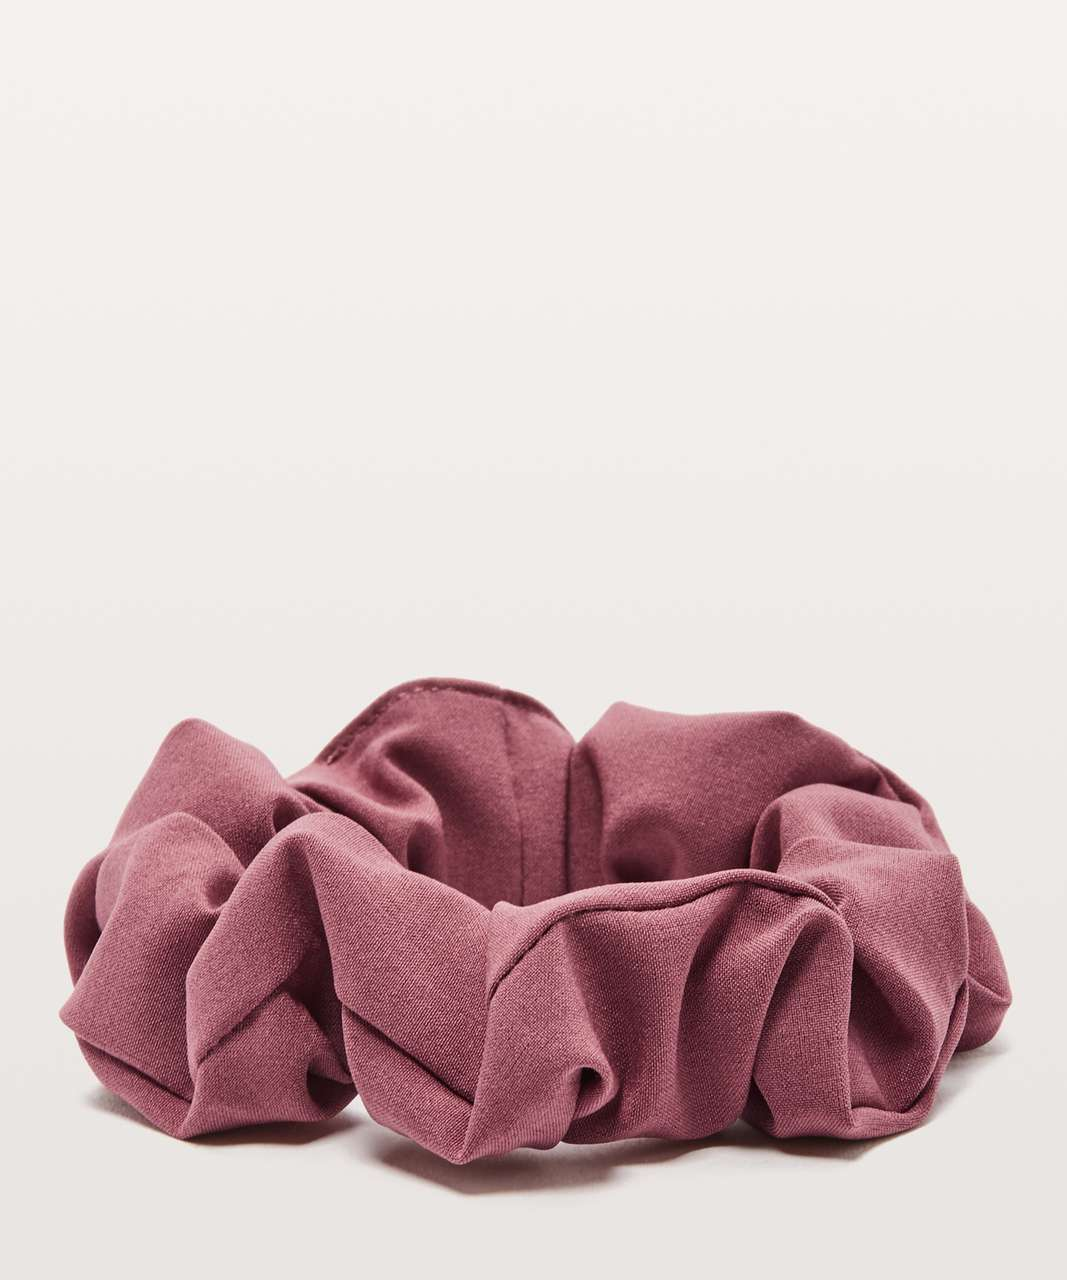 Lululemon Uplifting Scrunchie - Misty Merlot